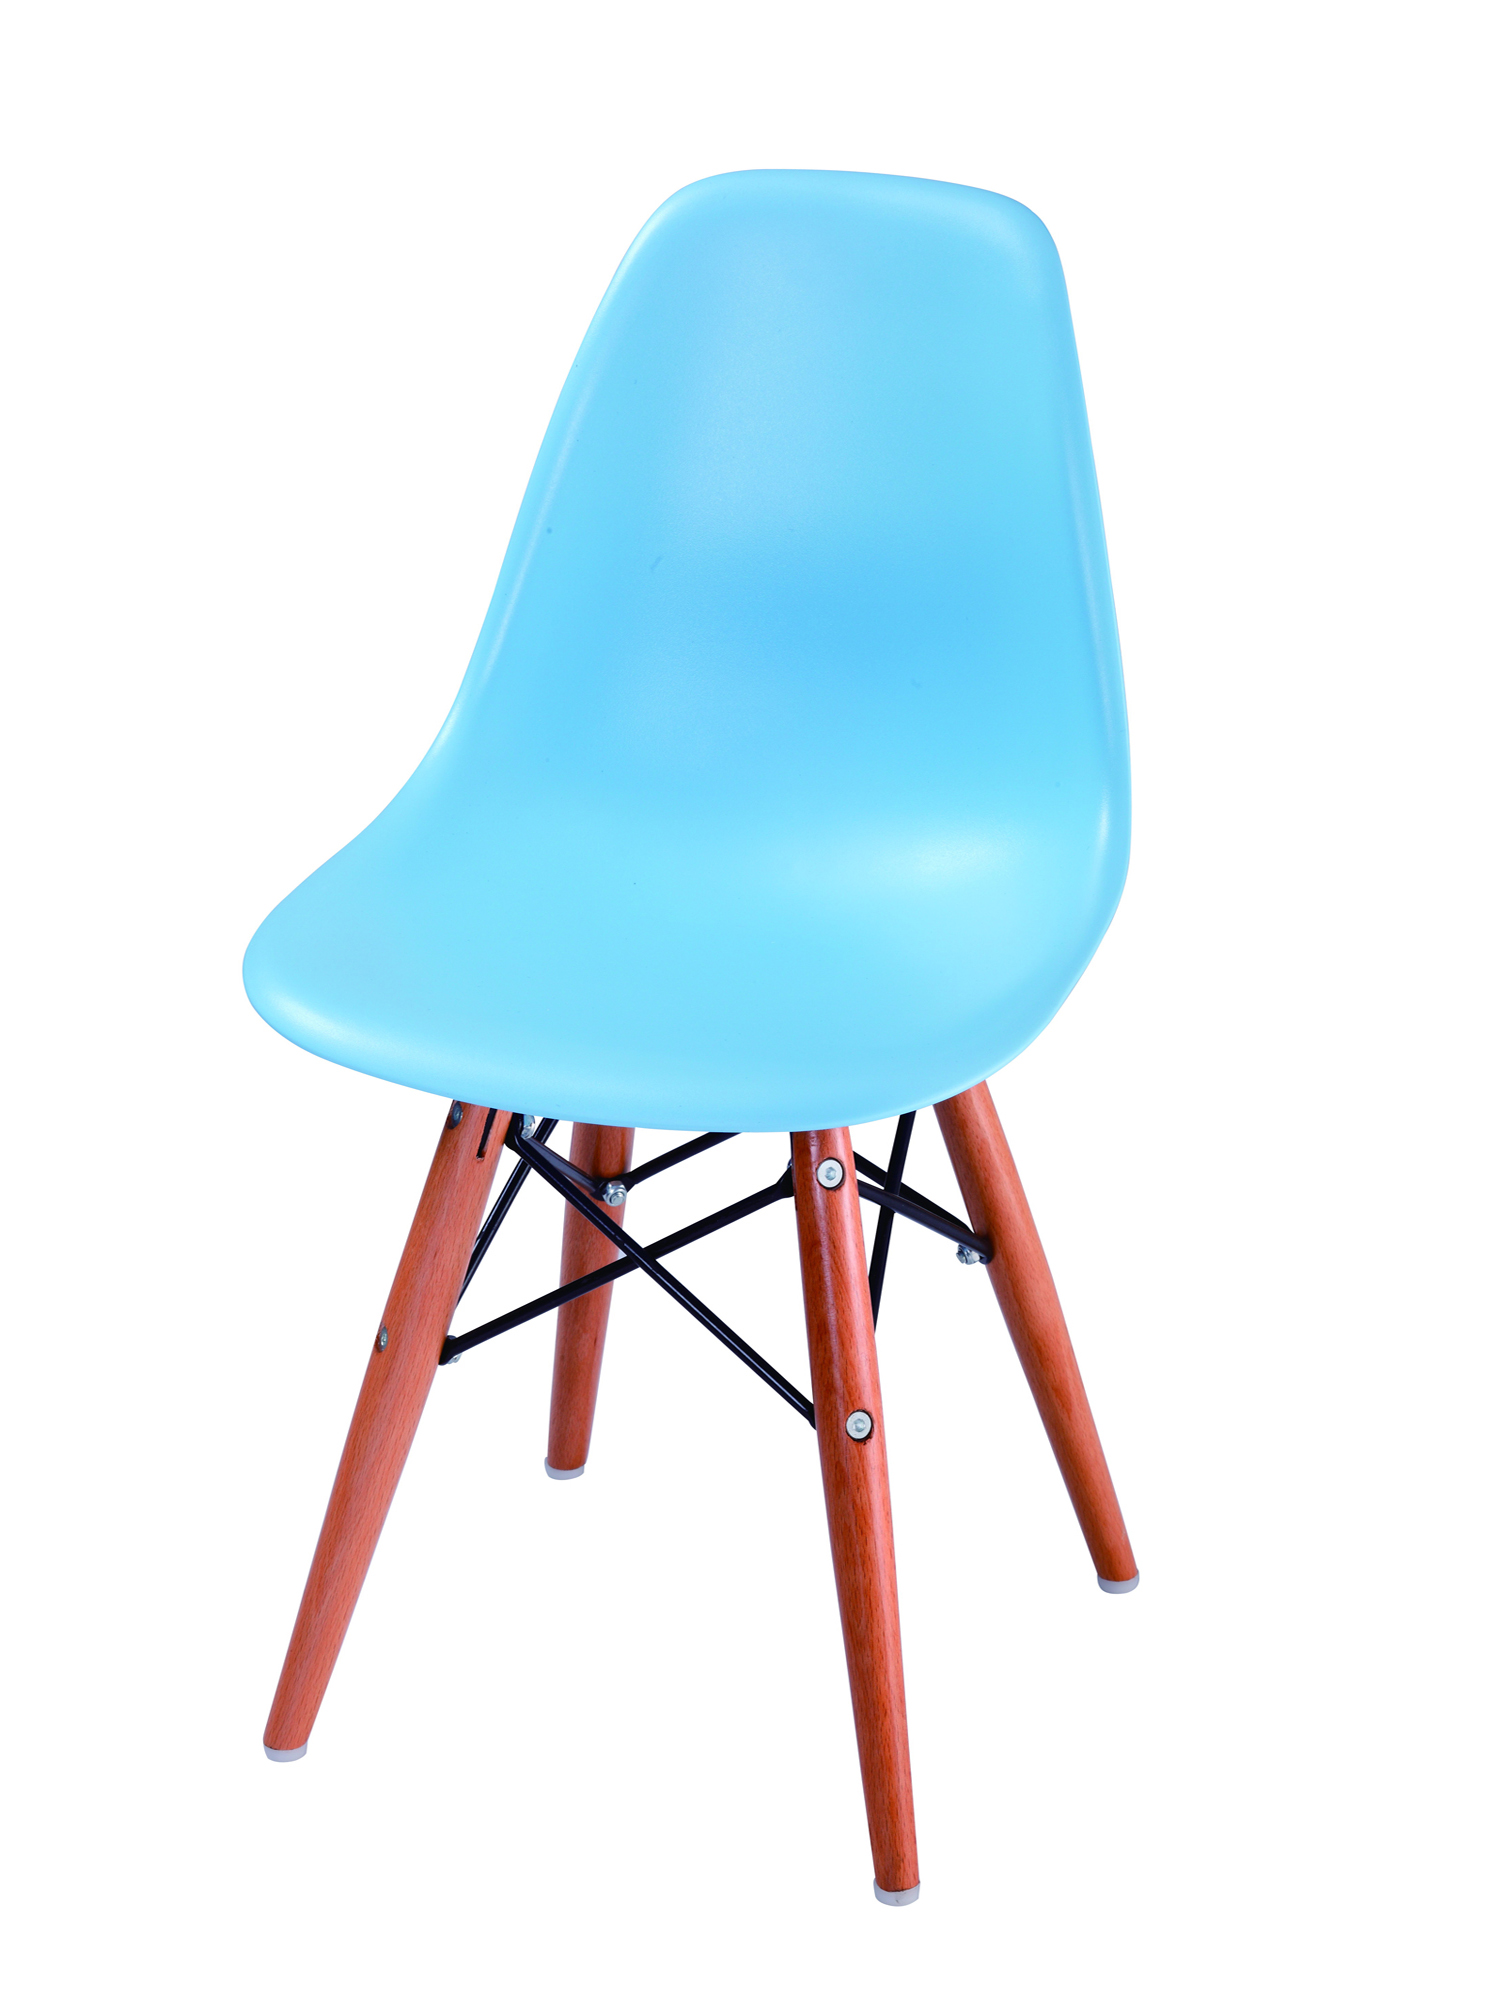 Eame style chair-blue-2